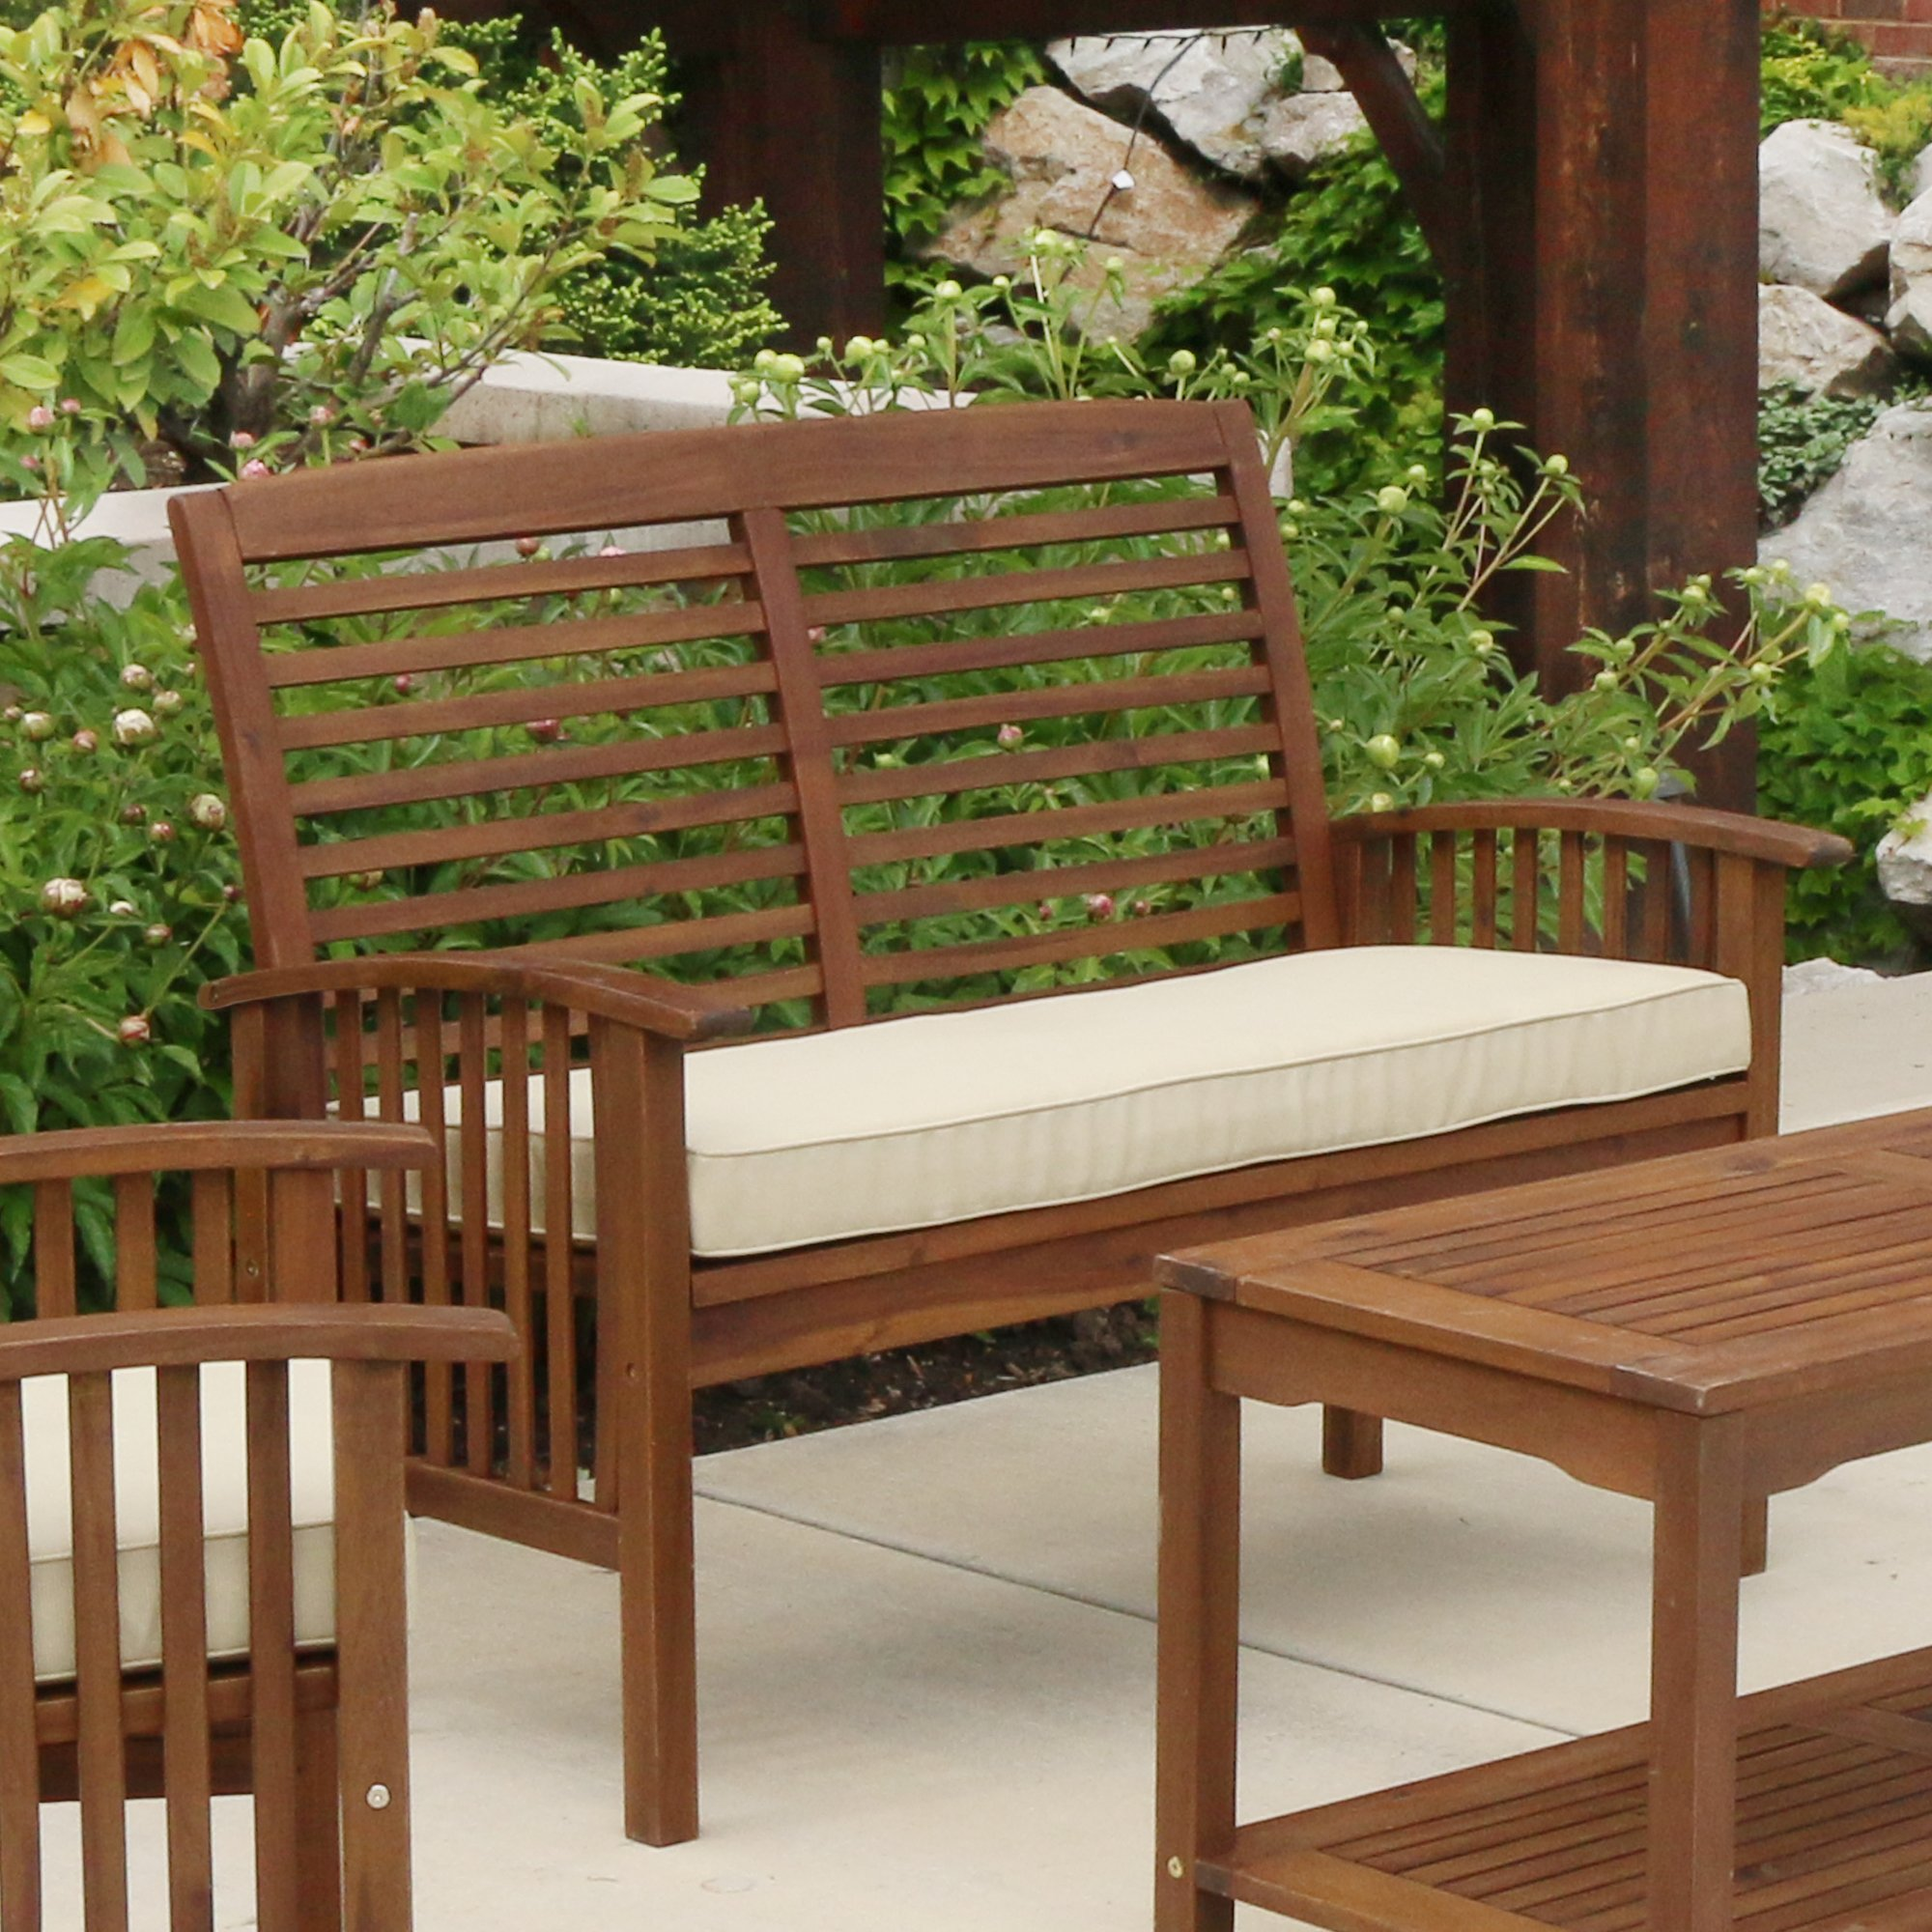 WE Furniture Solid Acacia Wood Patio Loveseat Bench